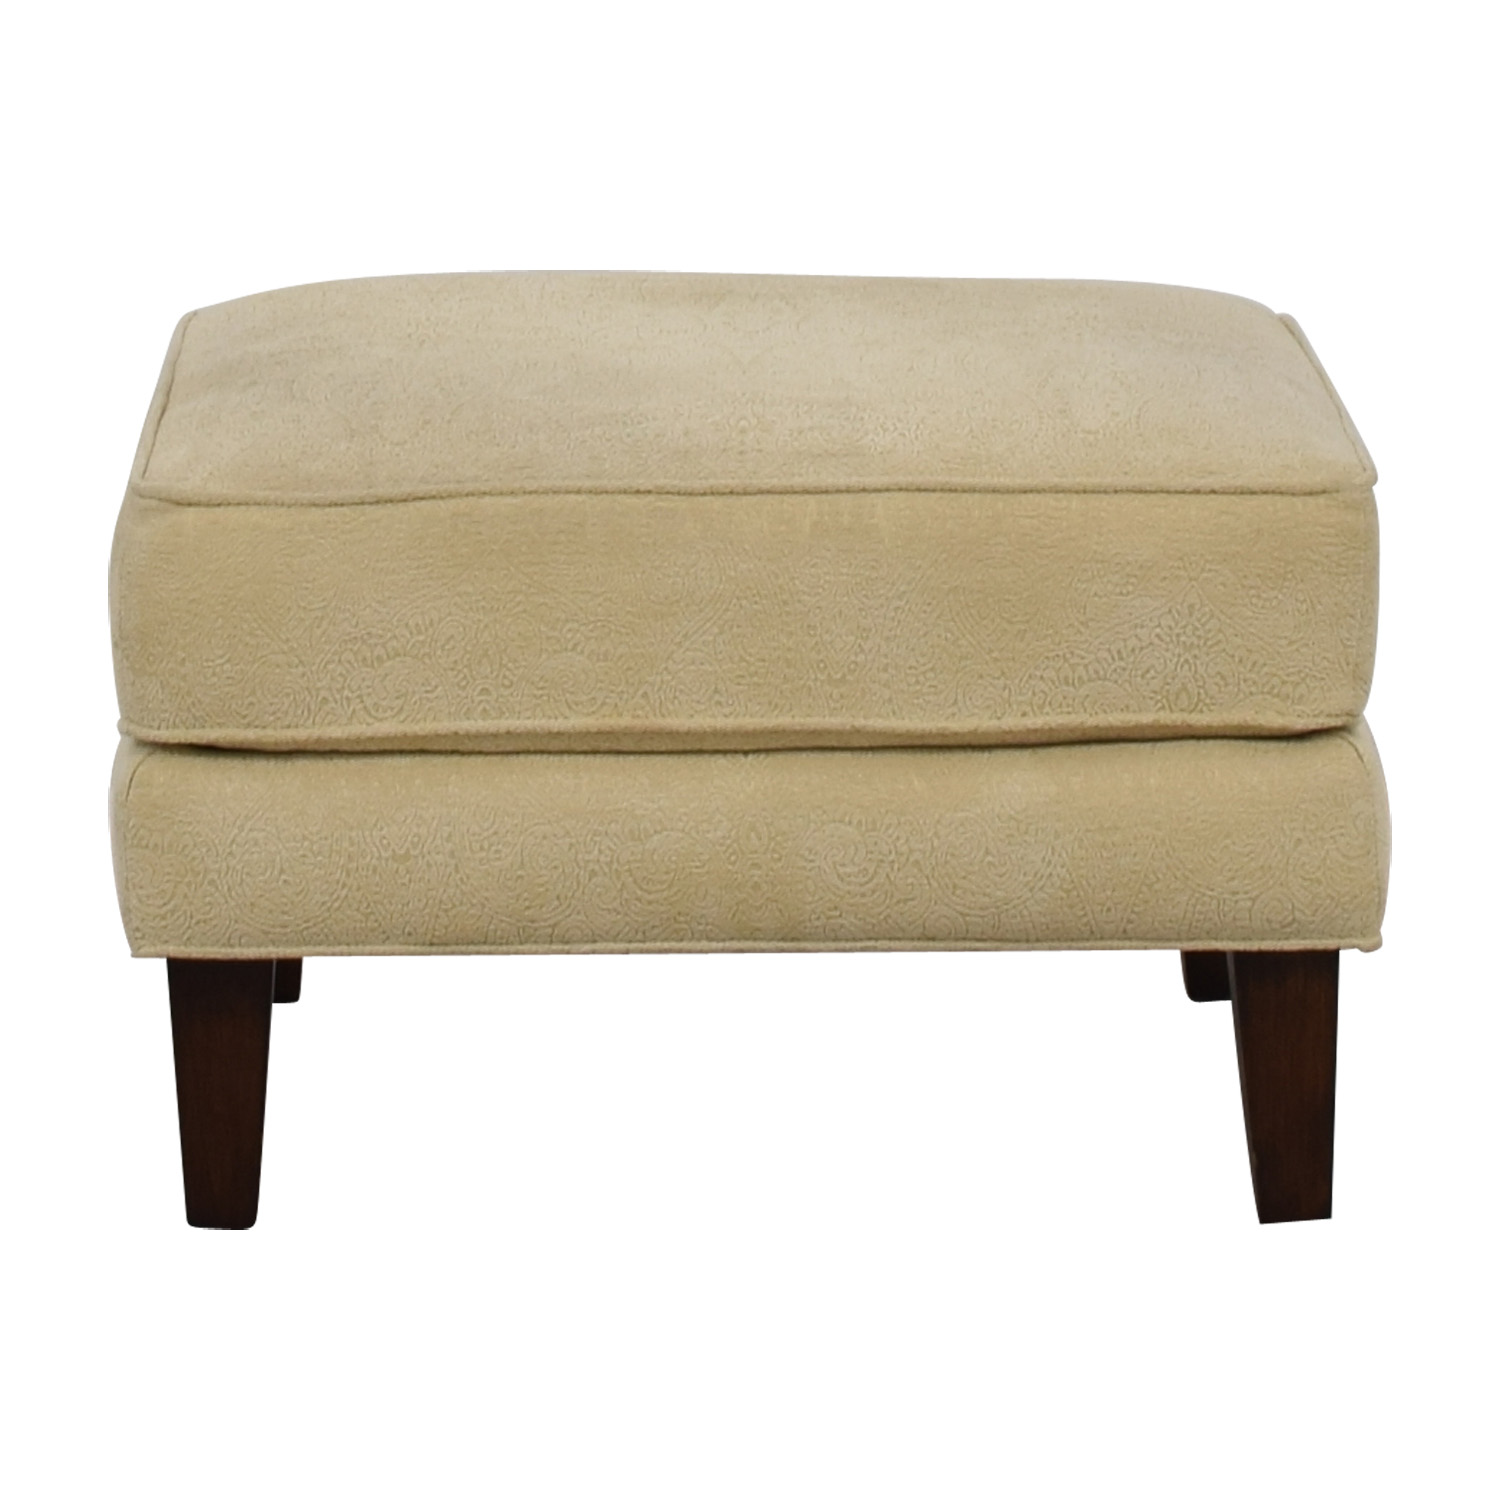 Thomasville Cream Ottoman / Chairs